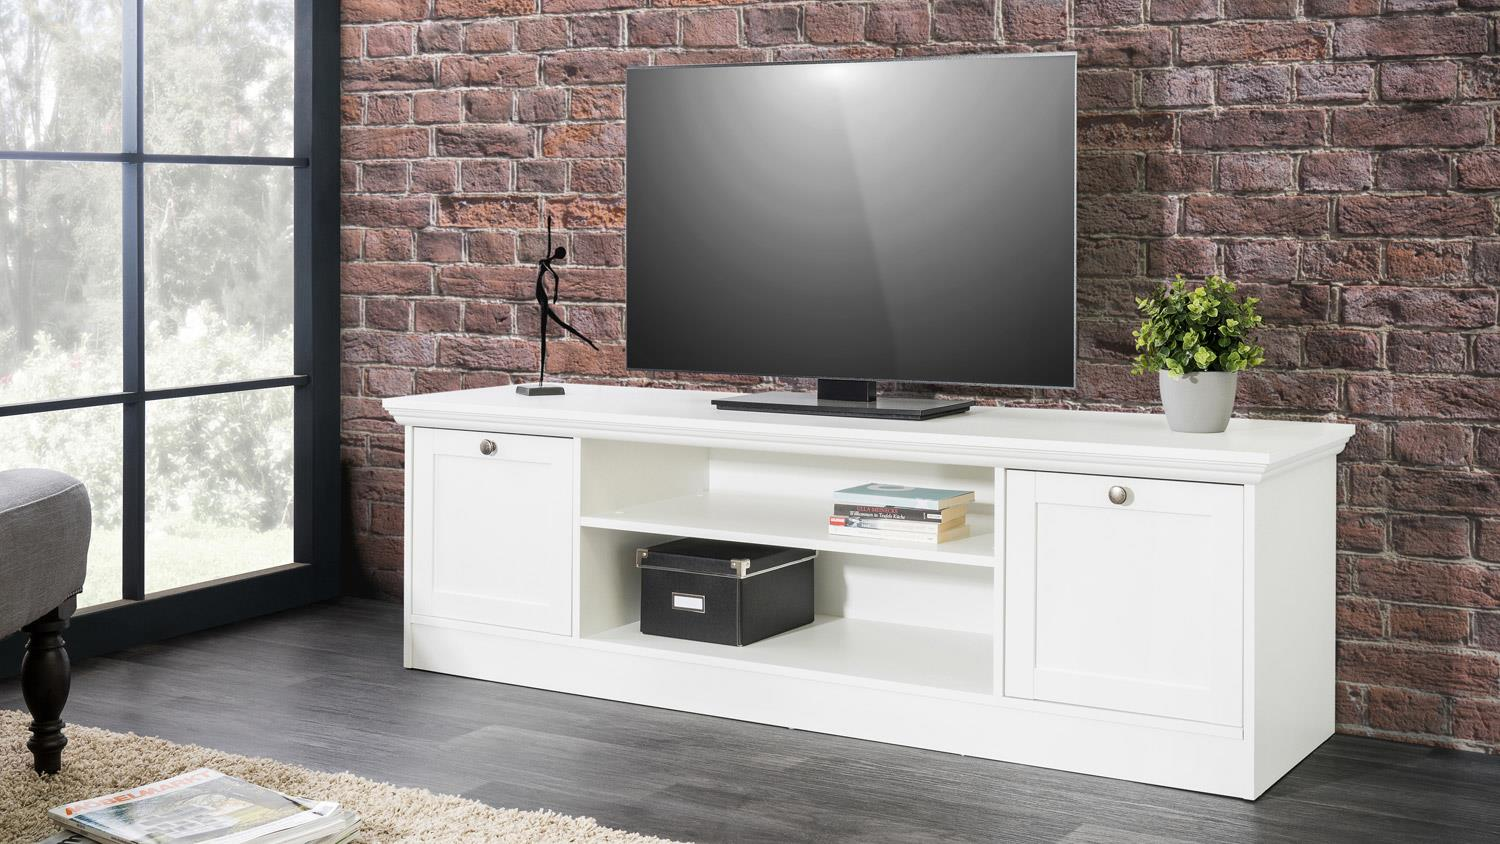 tv board landwood lowboard hifi in wei mit 2 f chern landhausstil. Black Bedroom Furniture Sets. Home Design Ideas